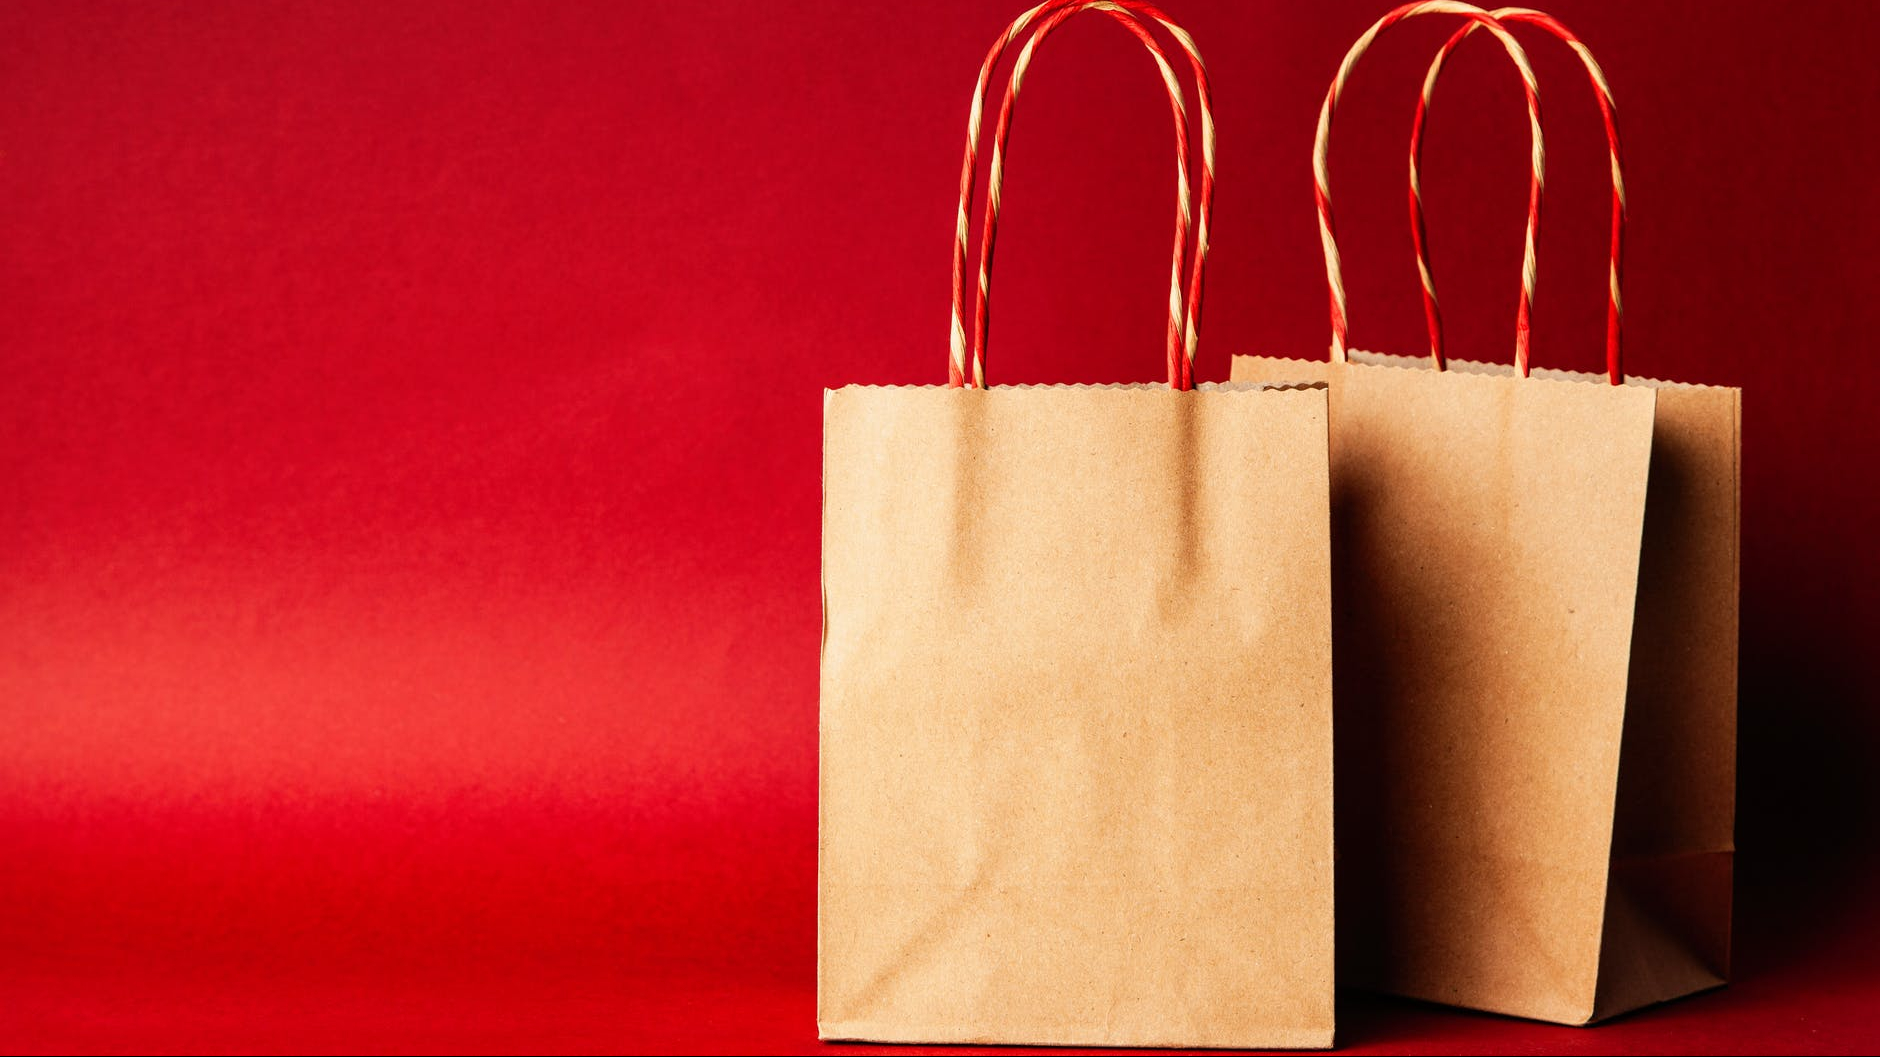 two shopping bags with red backgroud